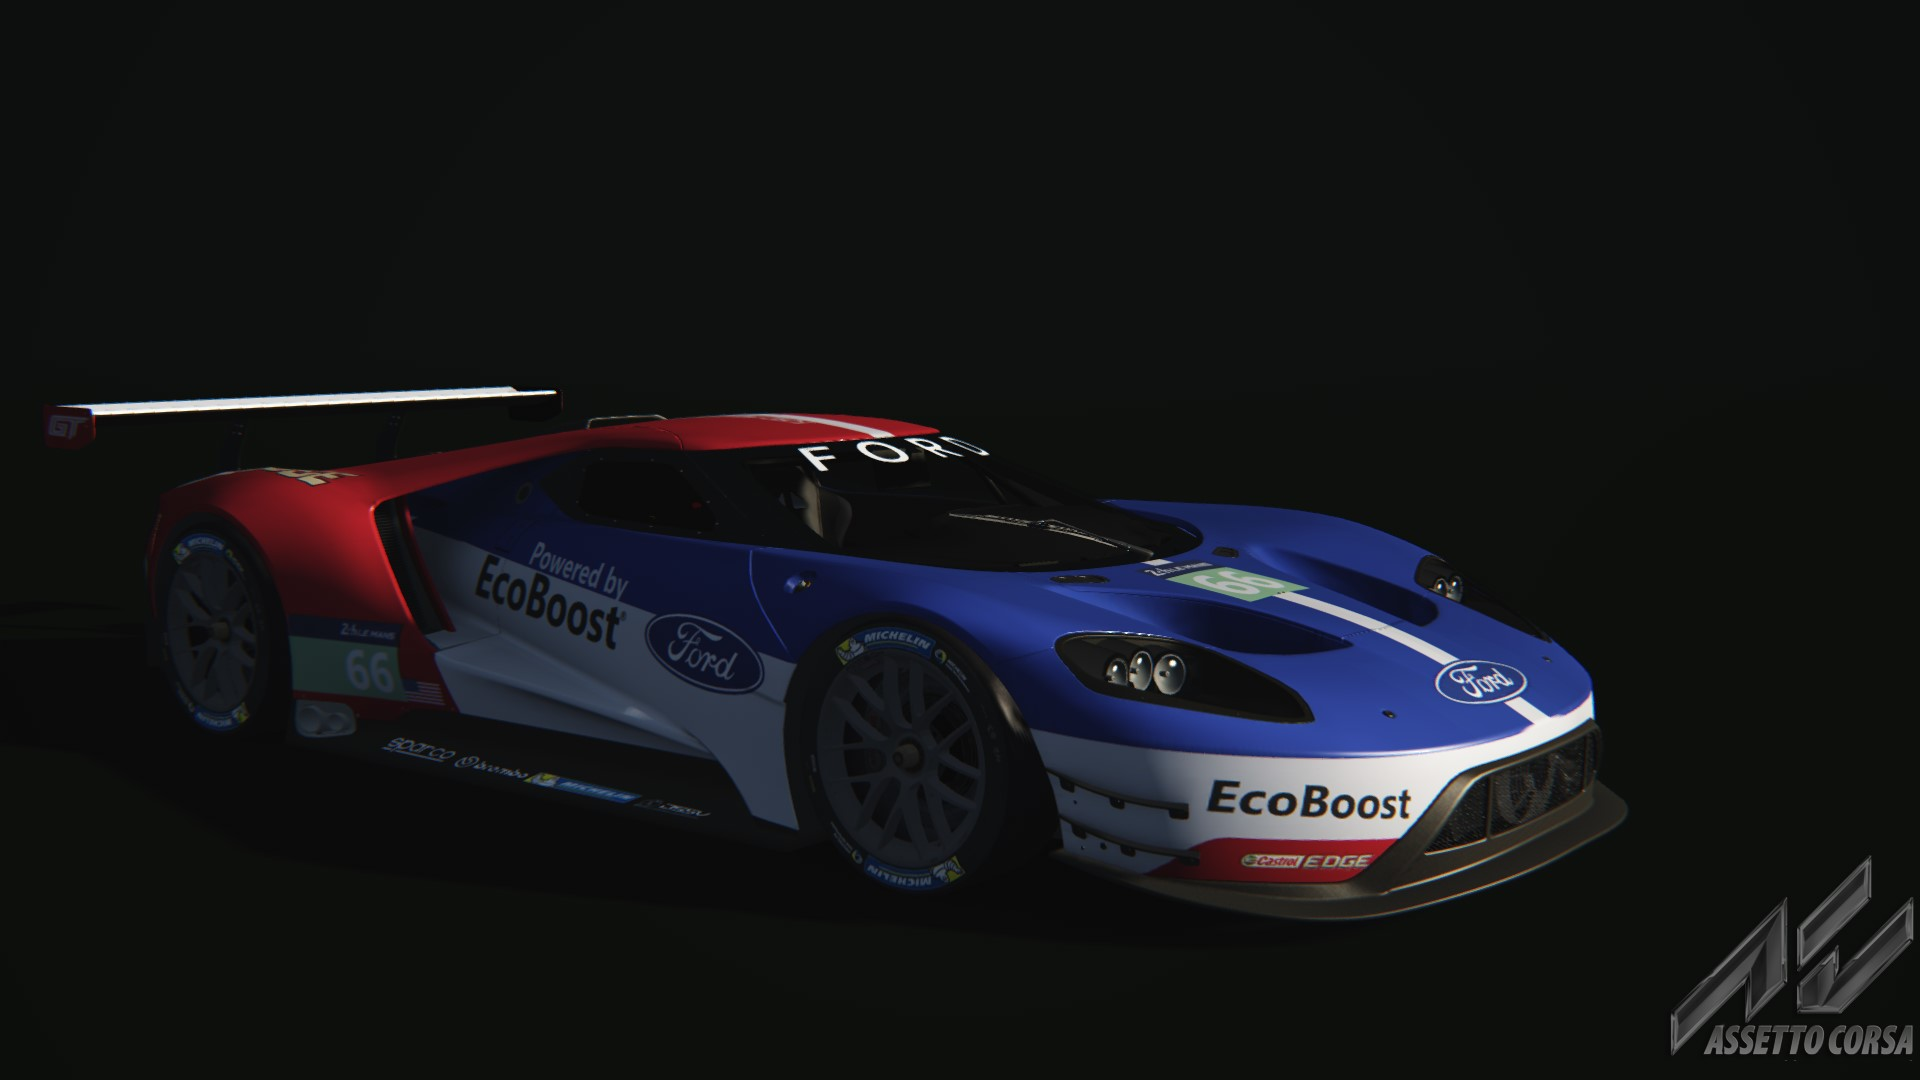 Ford GTE LMS - Ford - Car Detail - Assetto Corsa Database